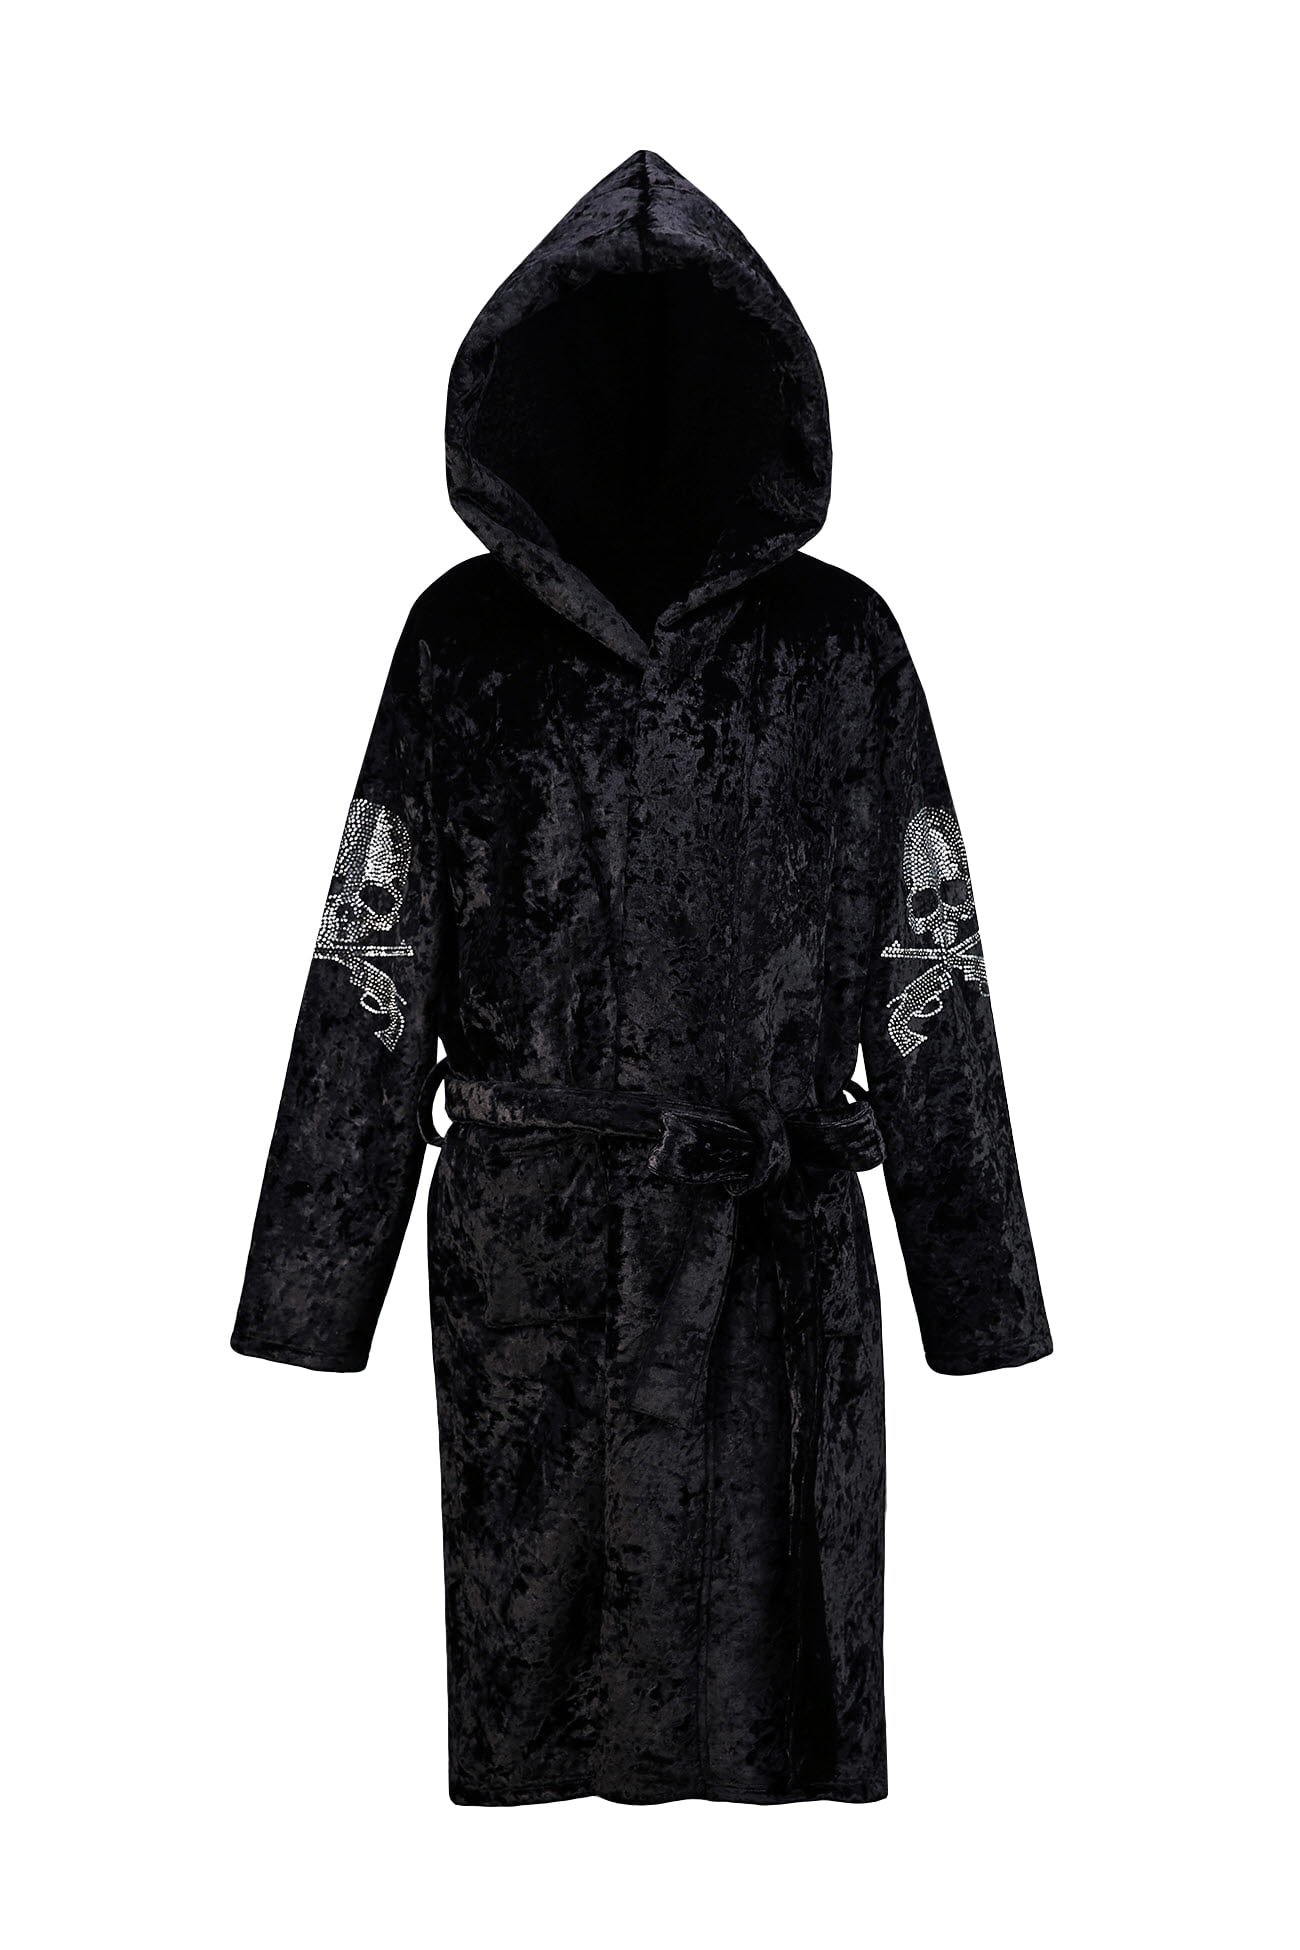 ByTheR Luxury Sleek Skull Glass Detailed Black Velvet Hoodie Gown Cardigan by ByTheR